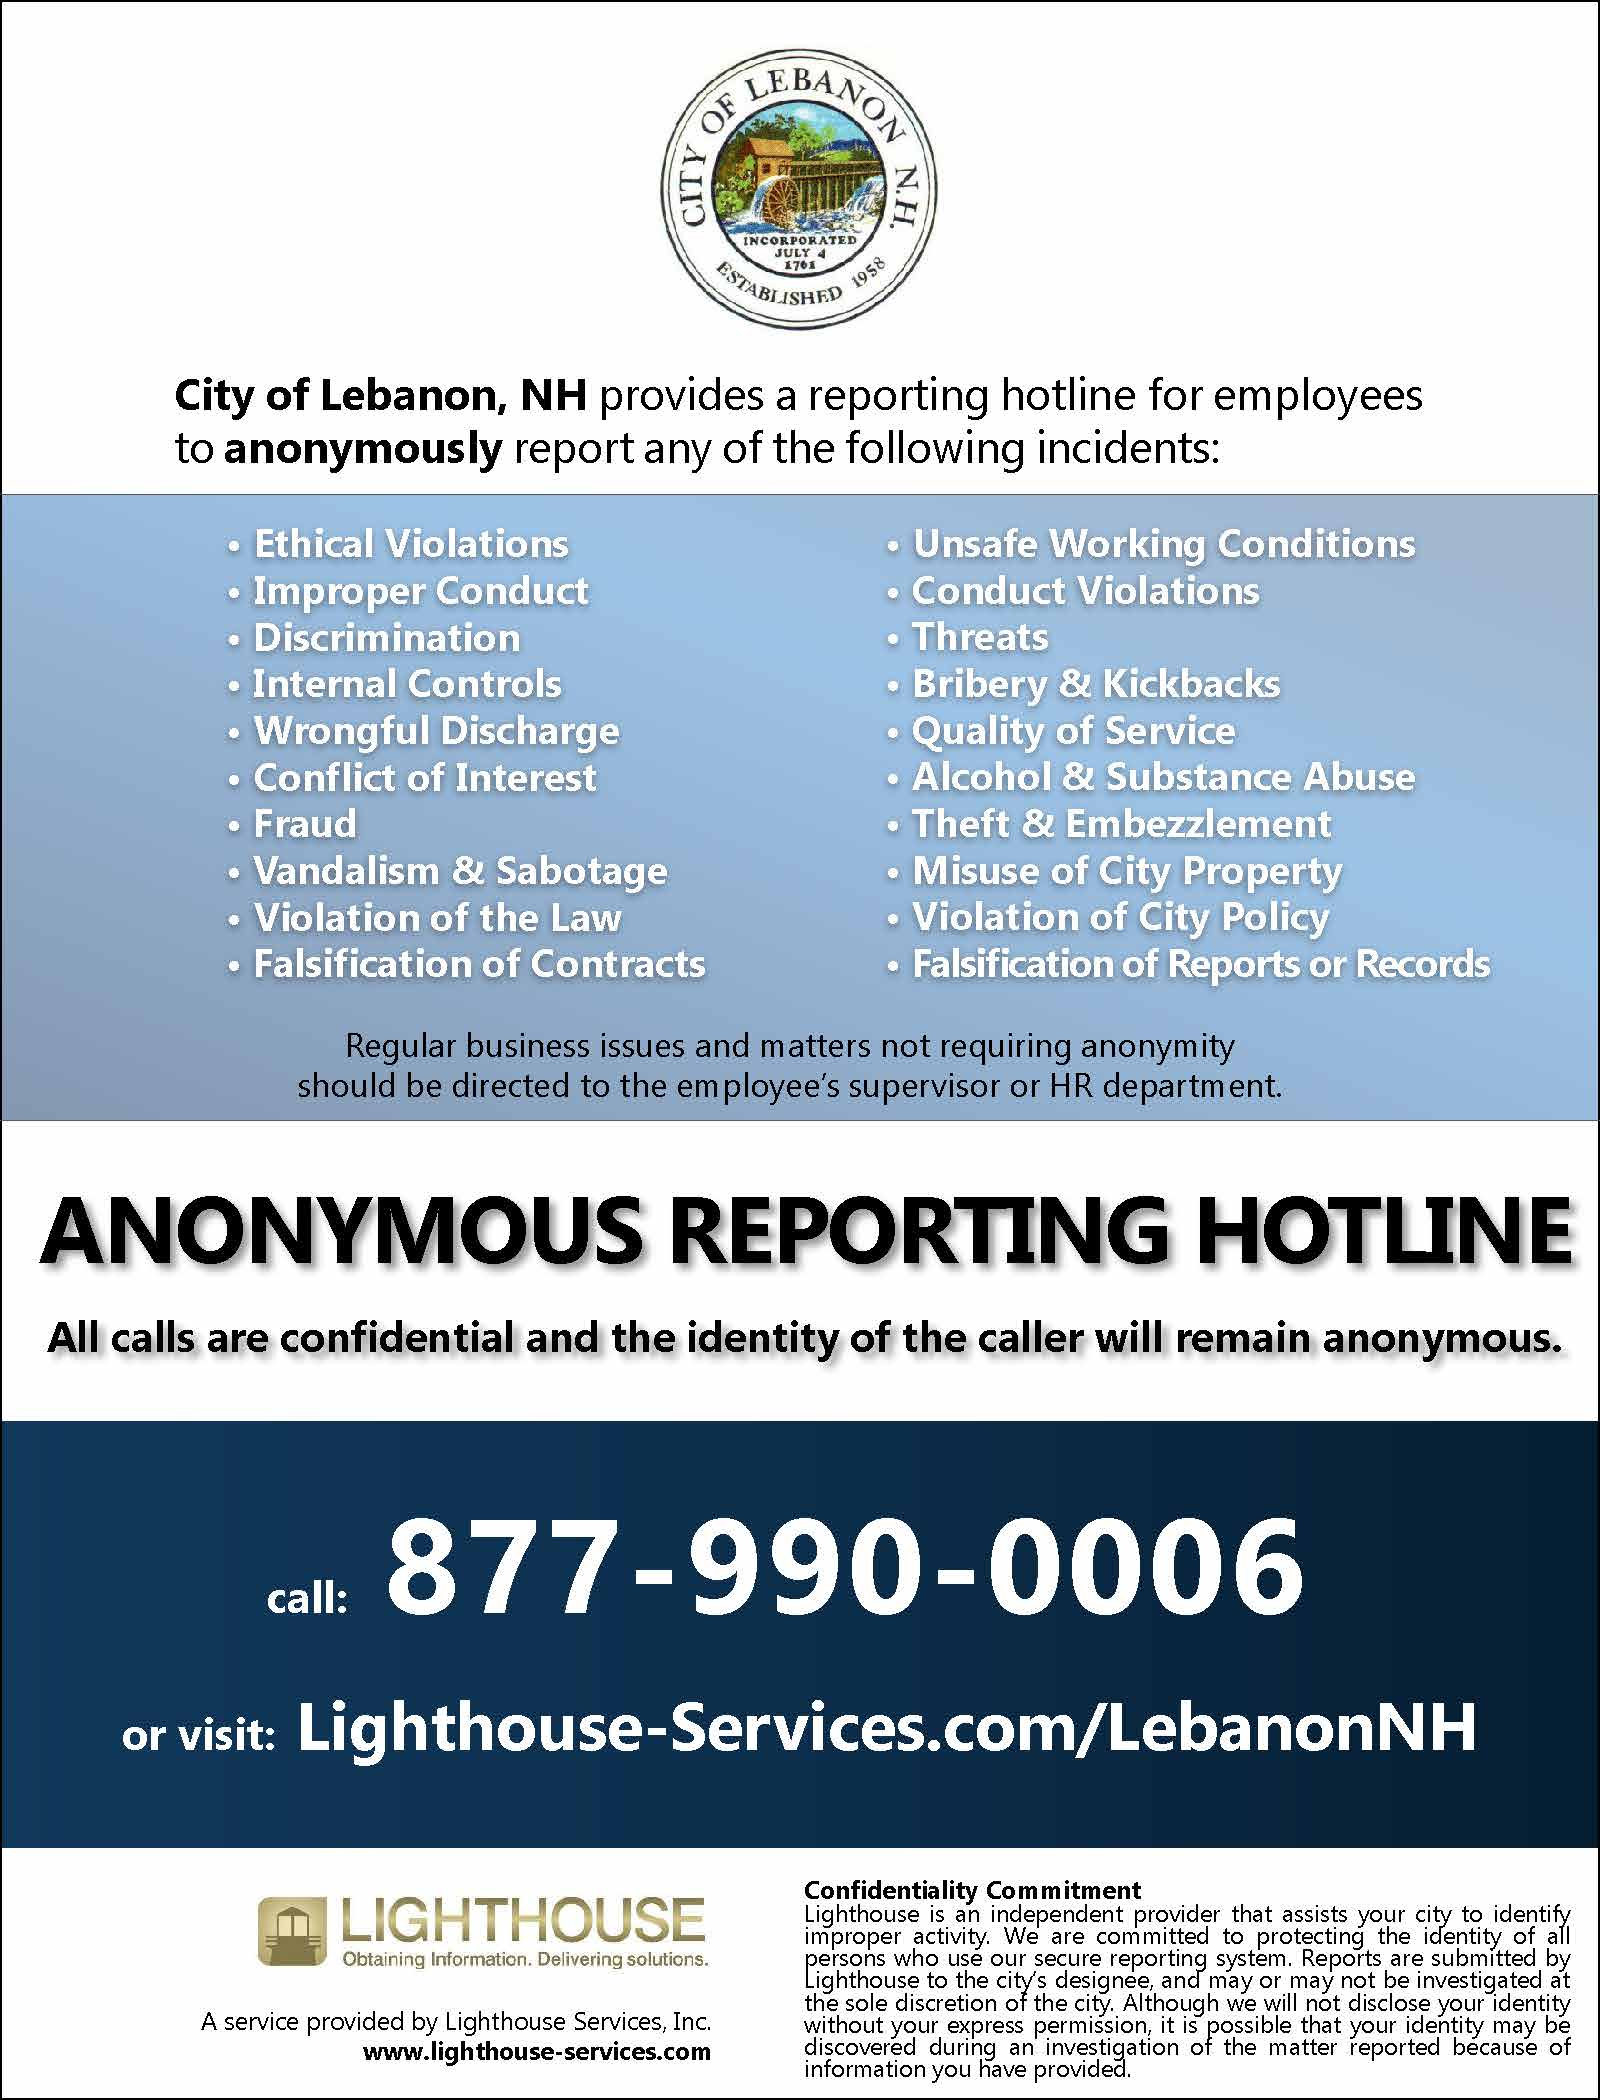 Screenshot of the anonymous reporting hotline poster